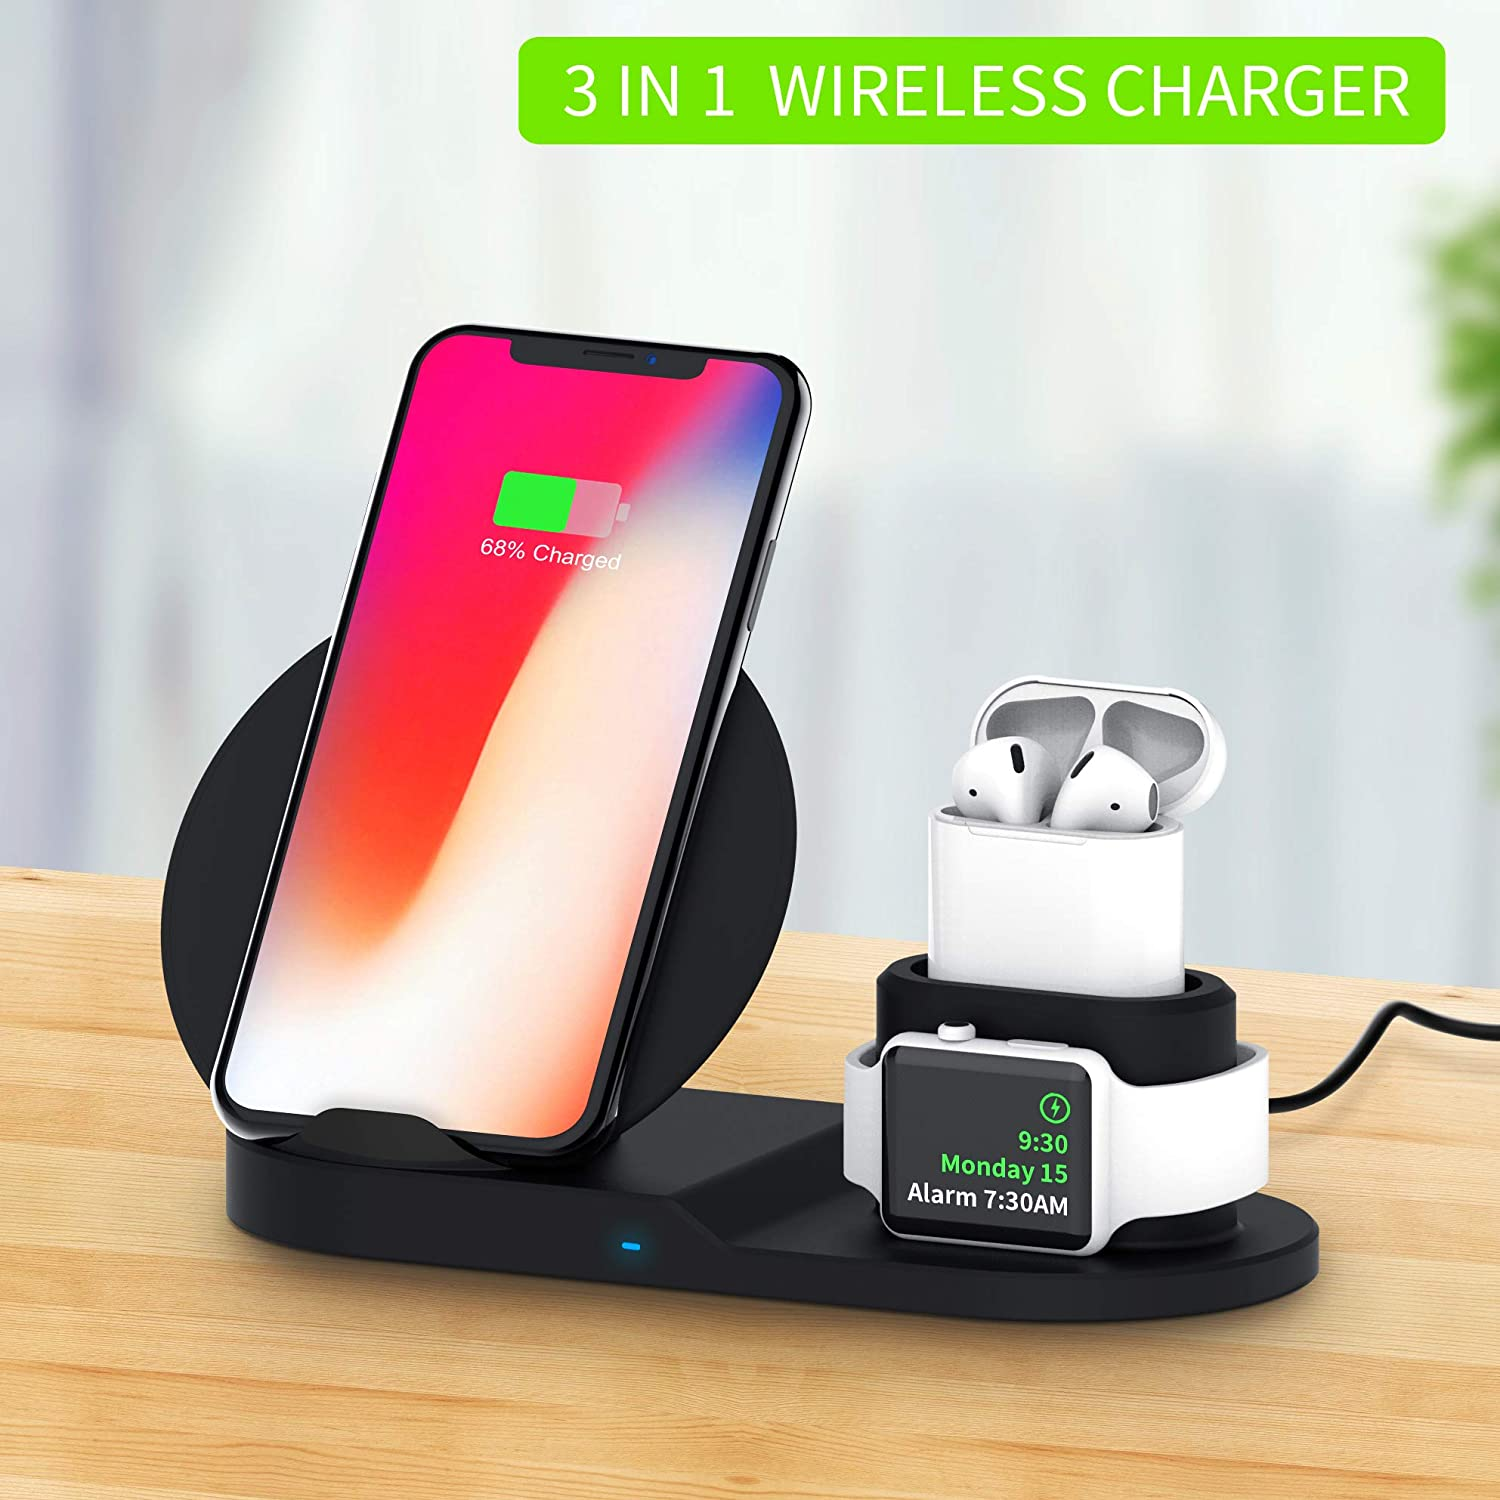 Apple Watch Wireless Charger 3 in 1 Qi Wireless Charger Stand for iPhone AirPods Pro Charge Dock Station For Apple Wireless Qui